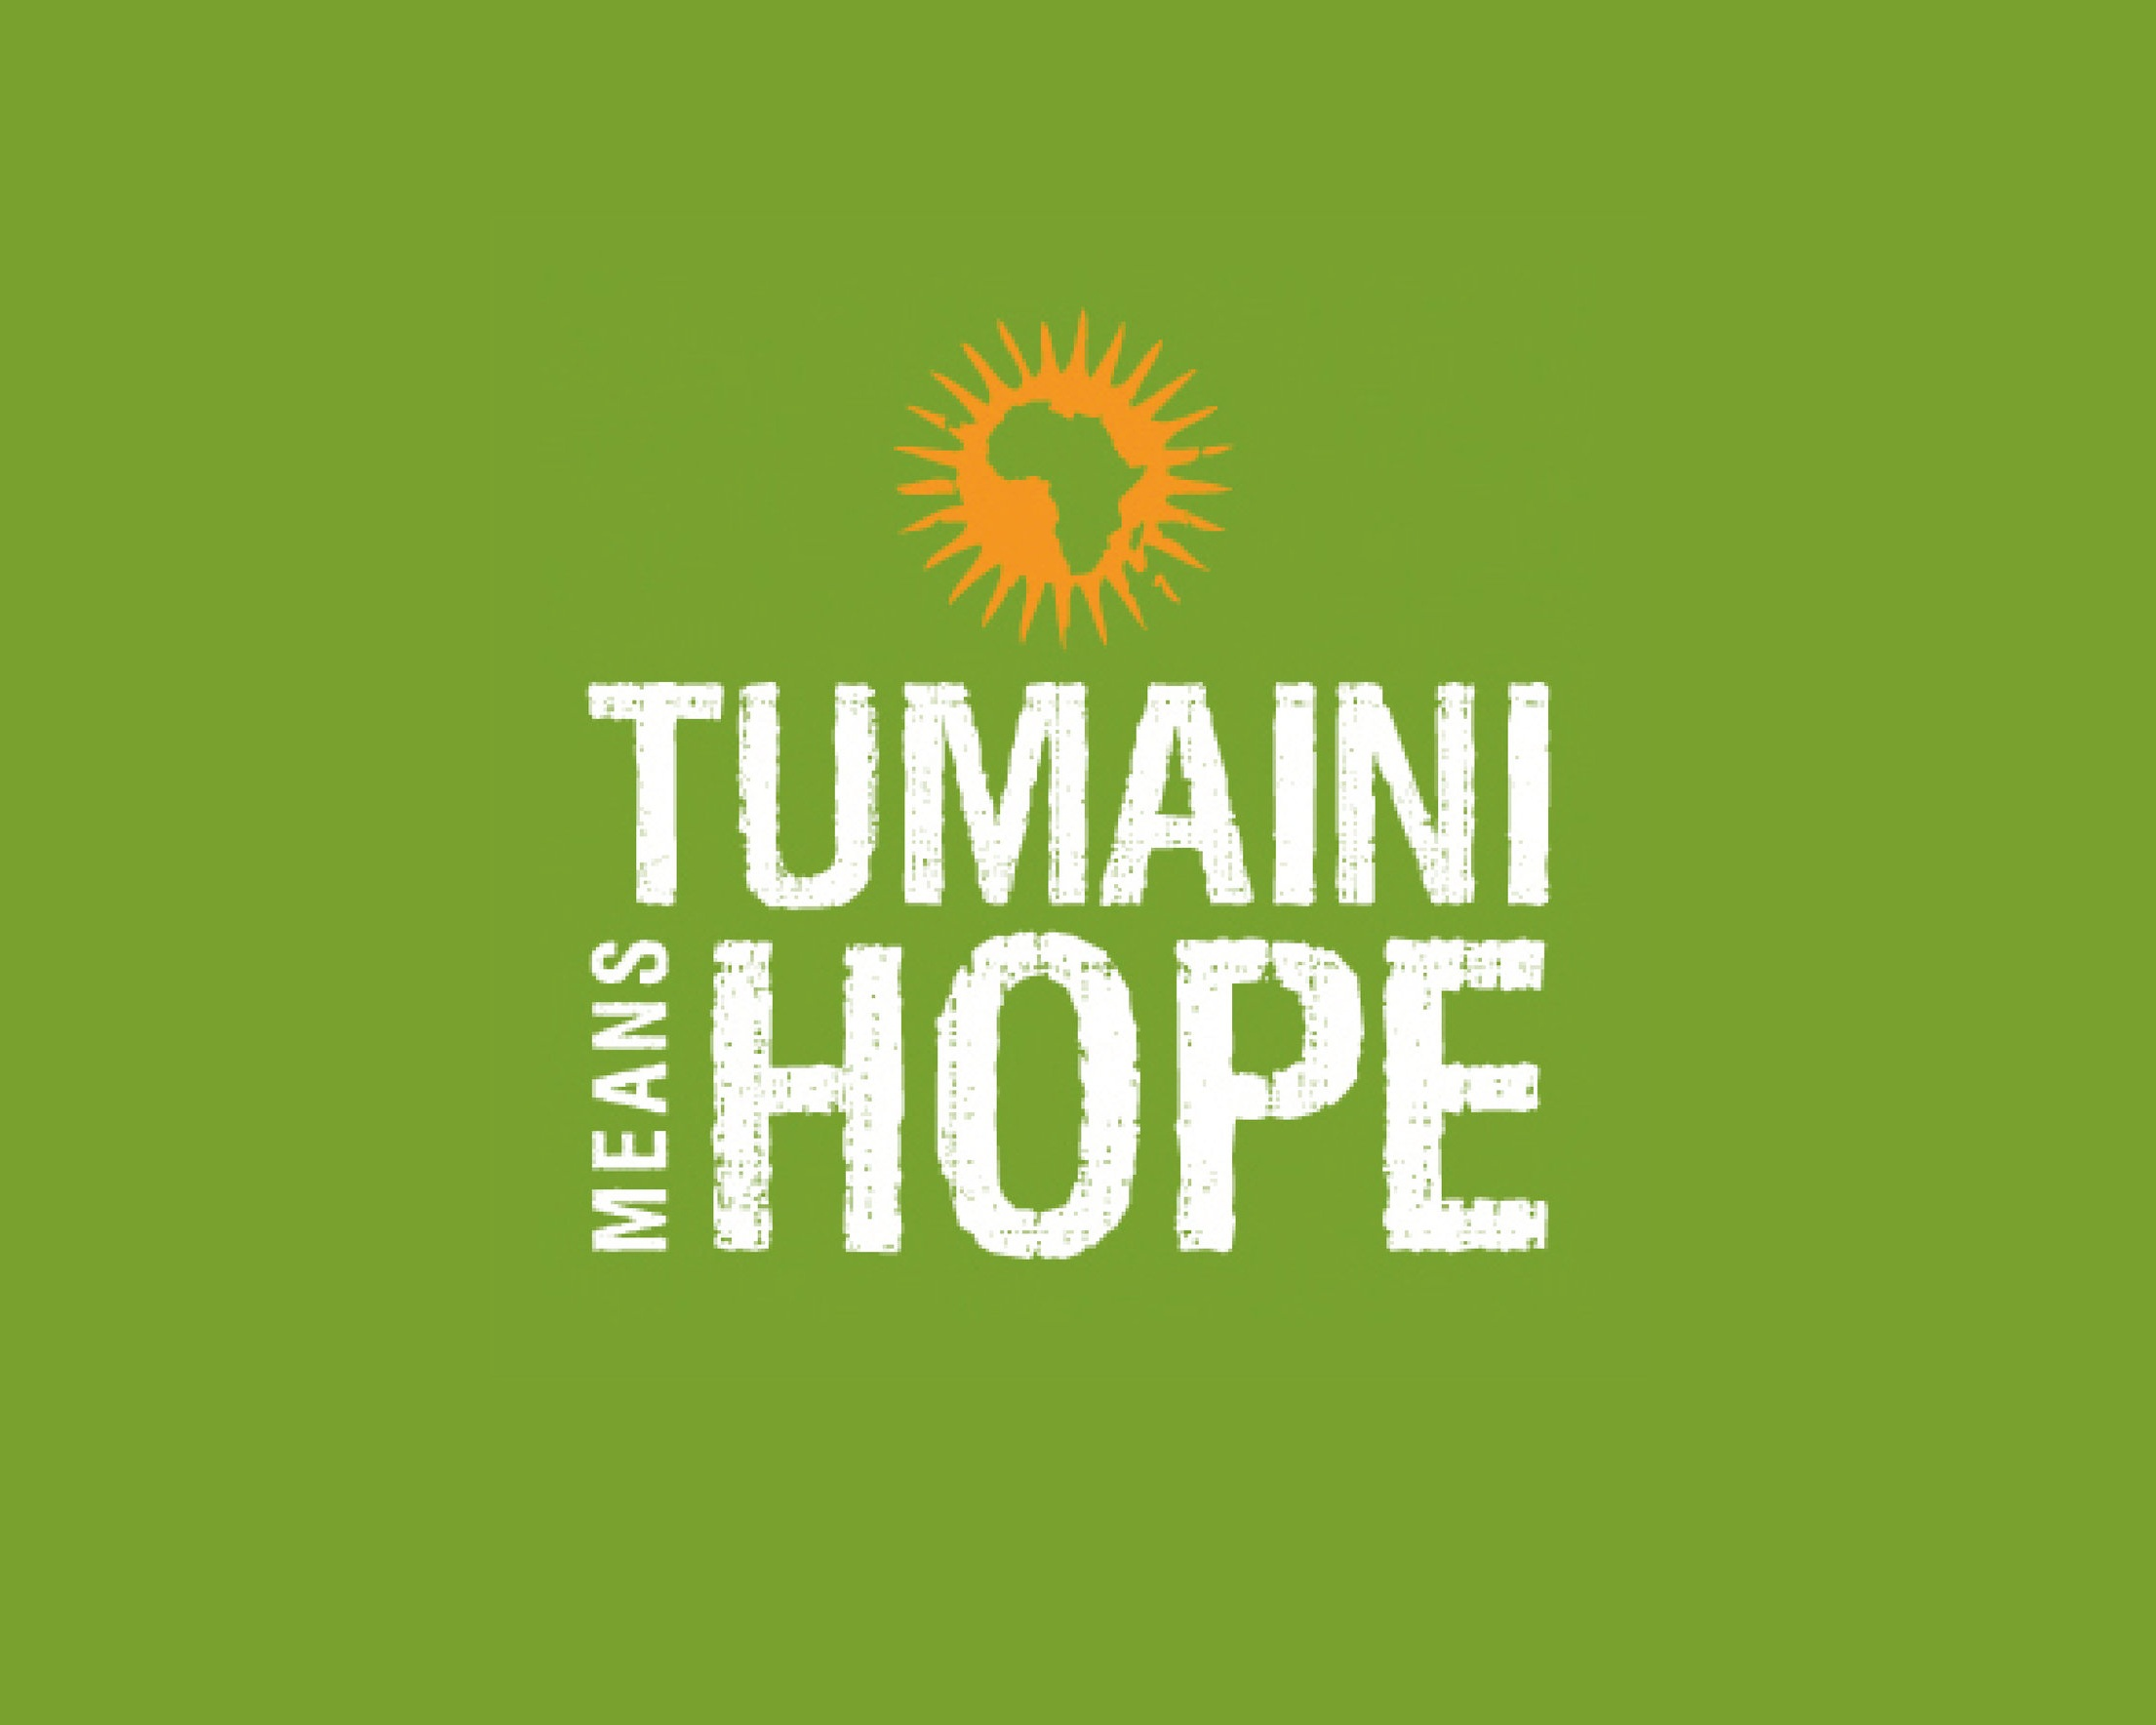 SandpiperCI raise funds for Tumaini and Charities -